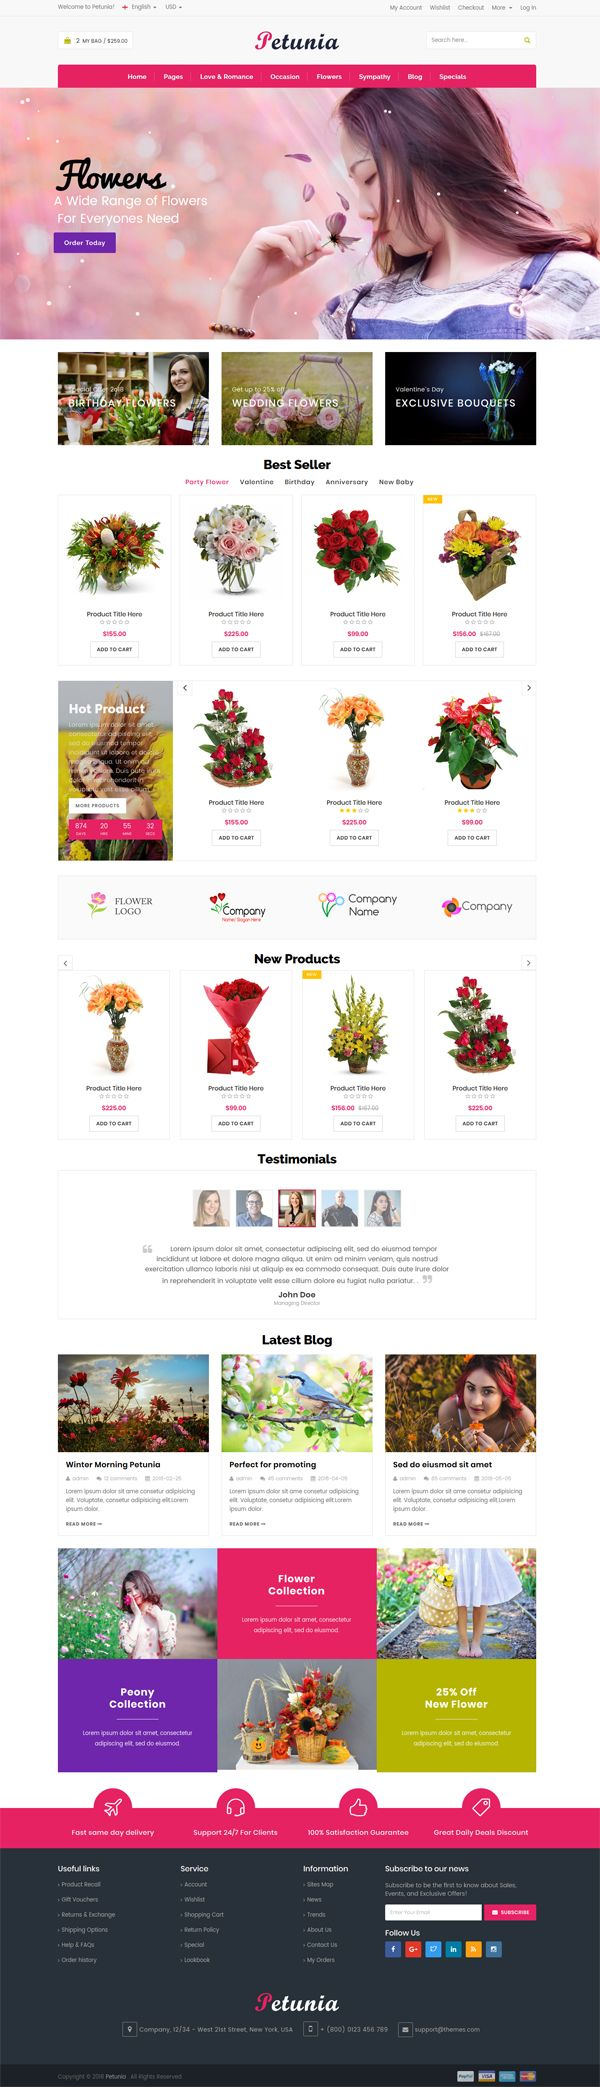 Petunia -Fashion Store Website Template Screenshot 1